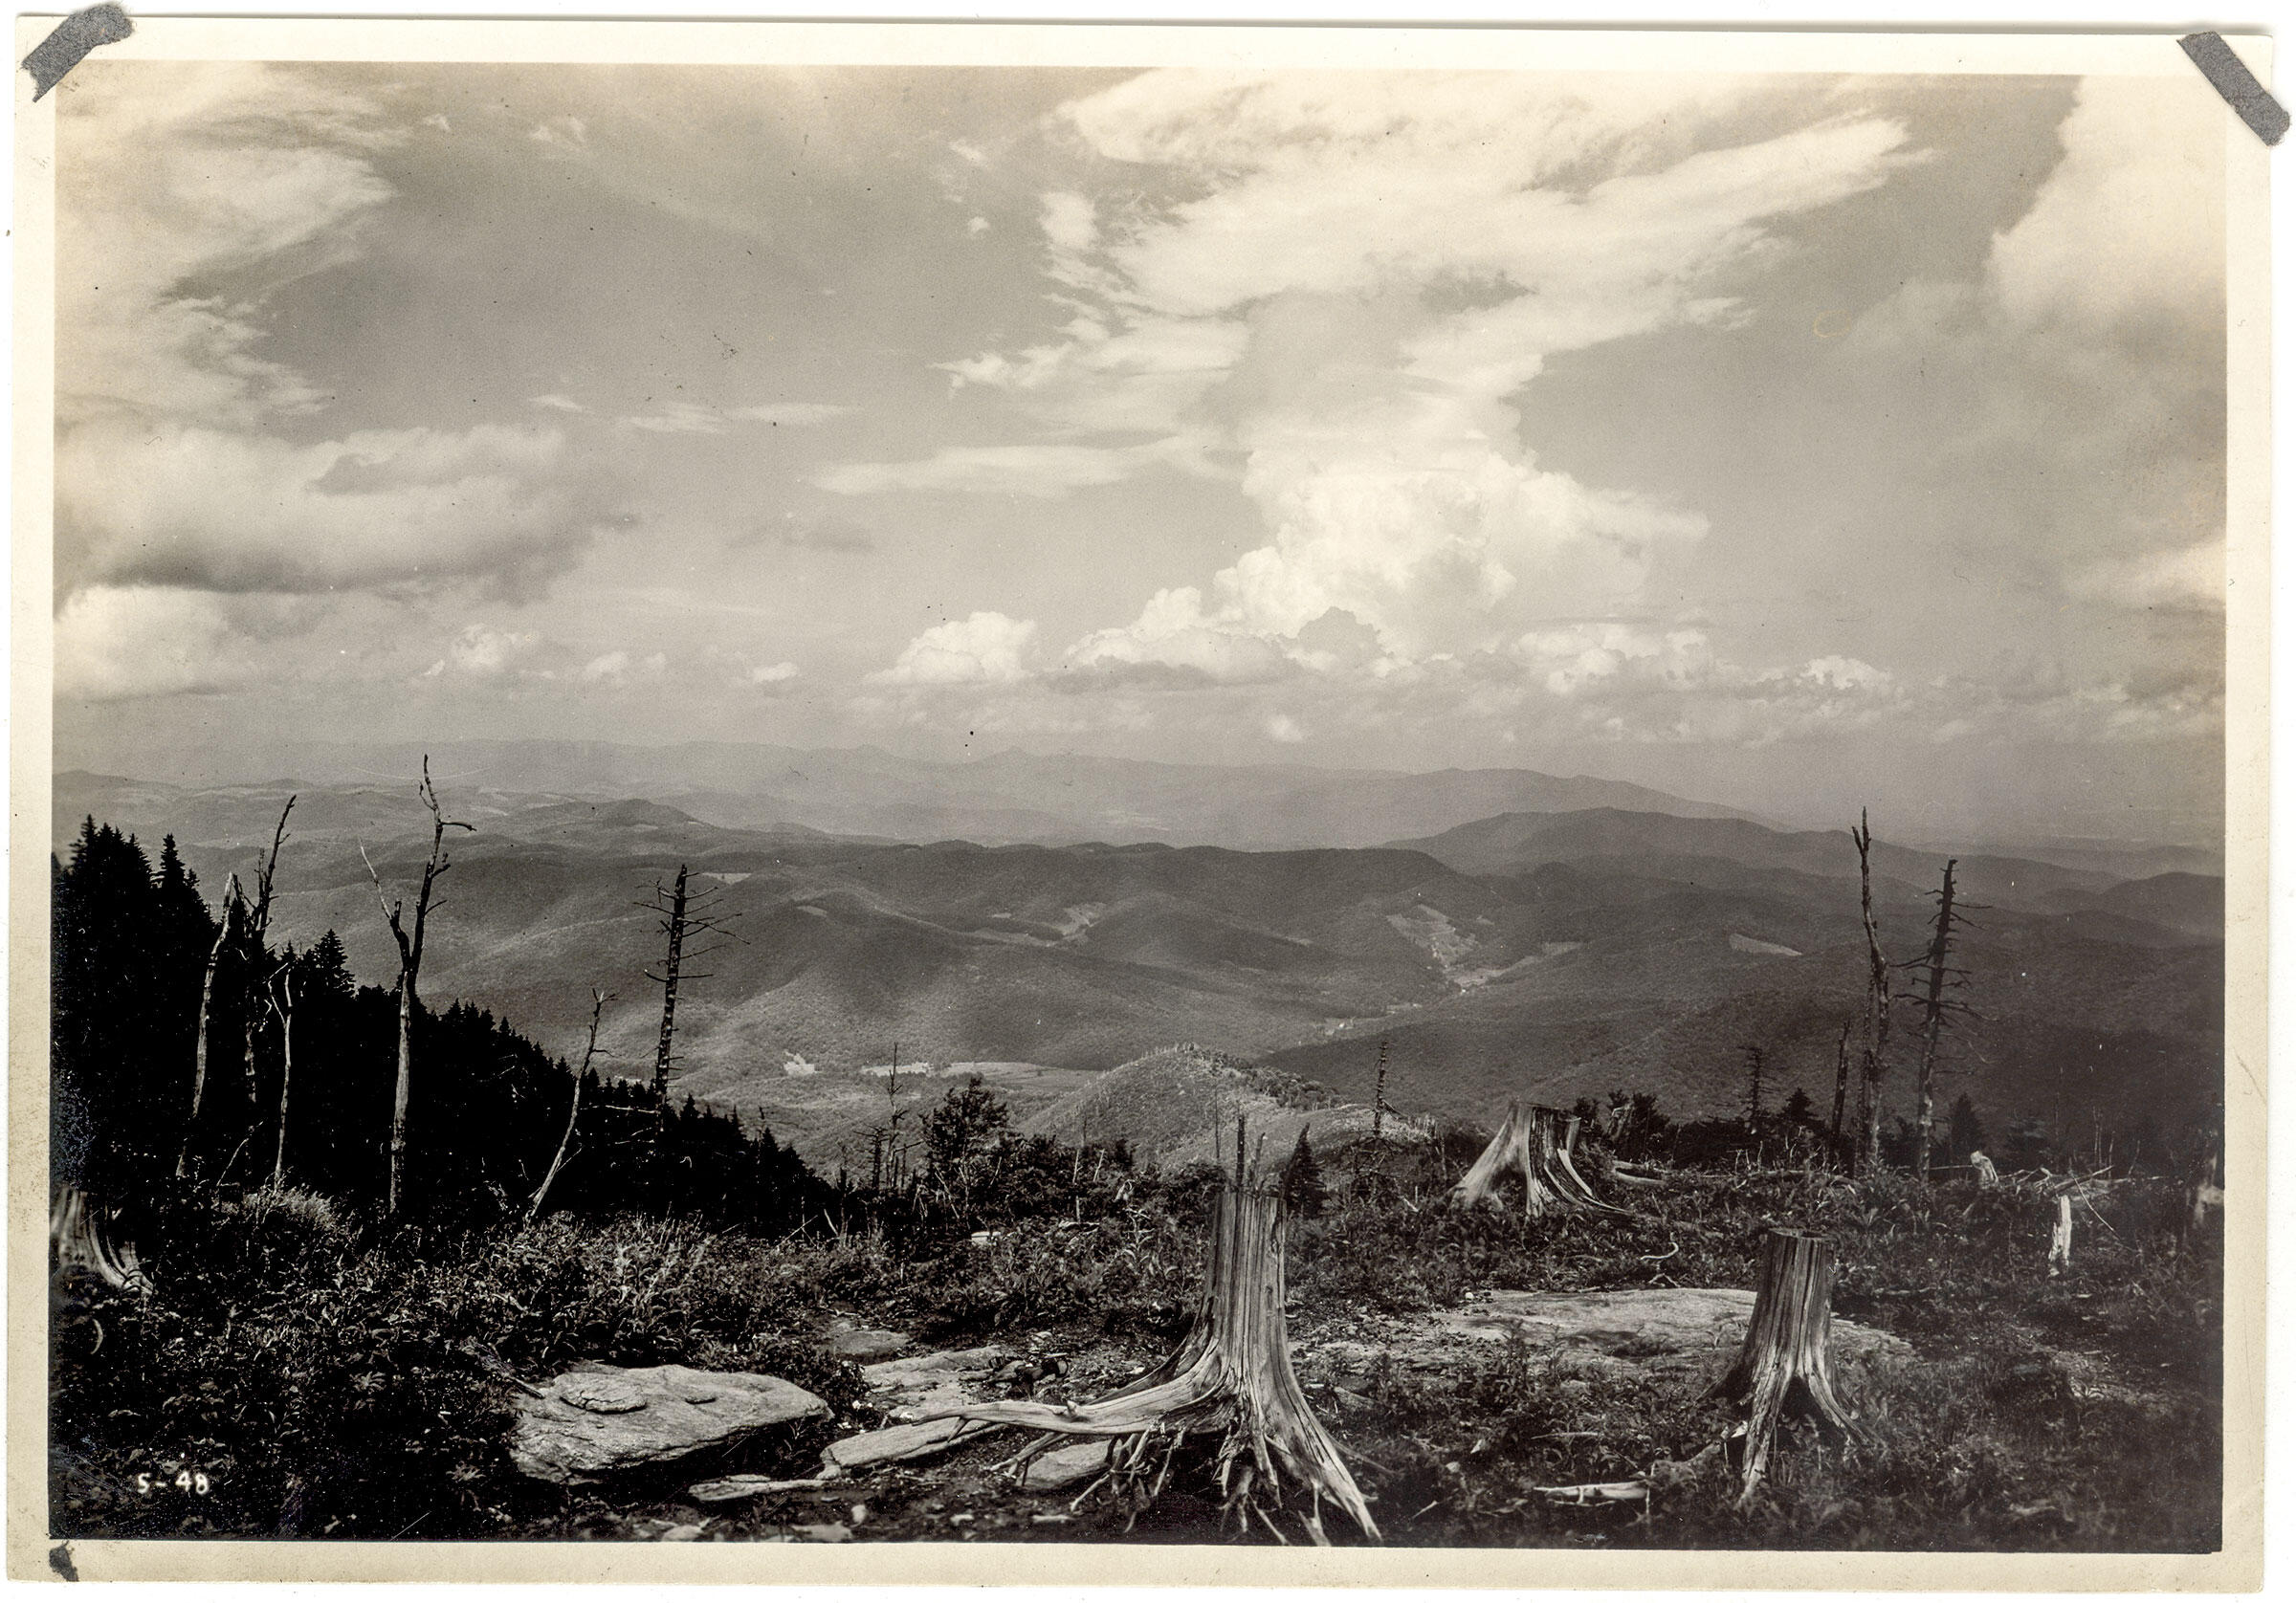 Clear-cutting in the Smoky Mountains. George Masa/Hunter Library, Western Carolina University